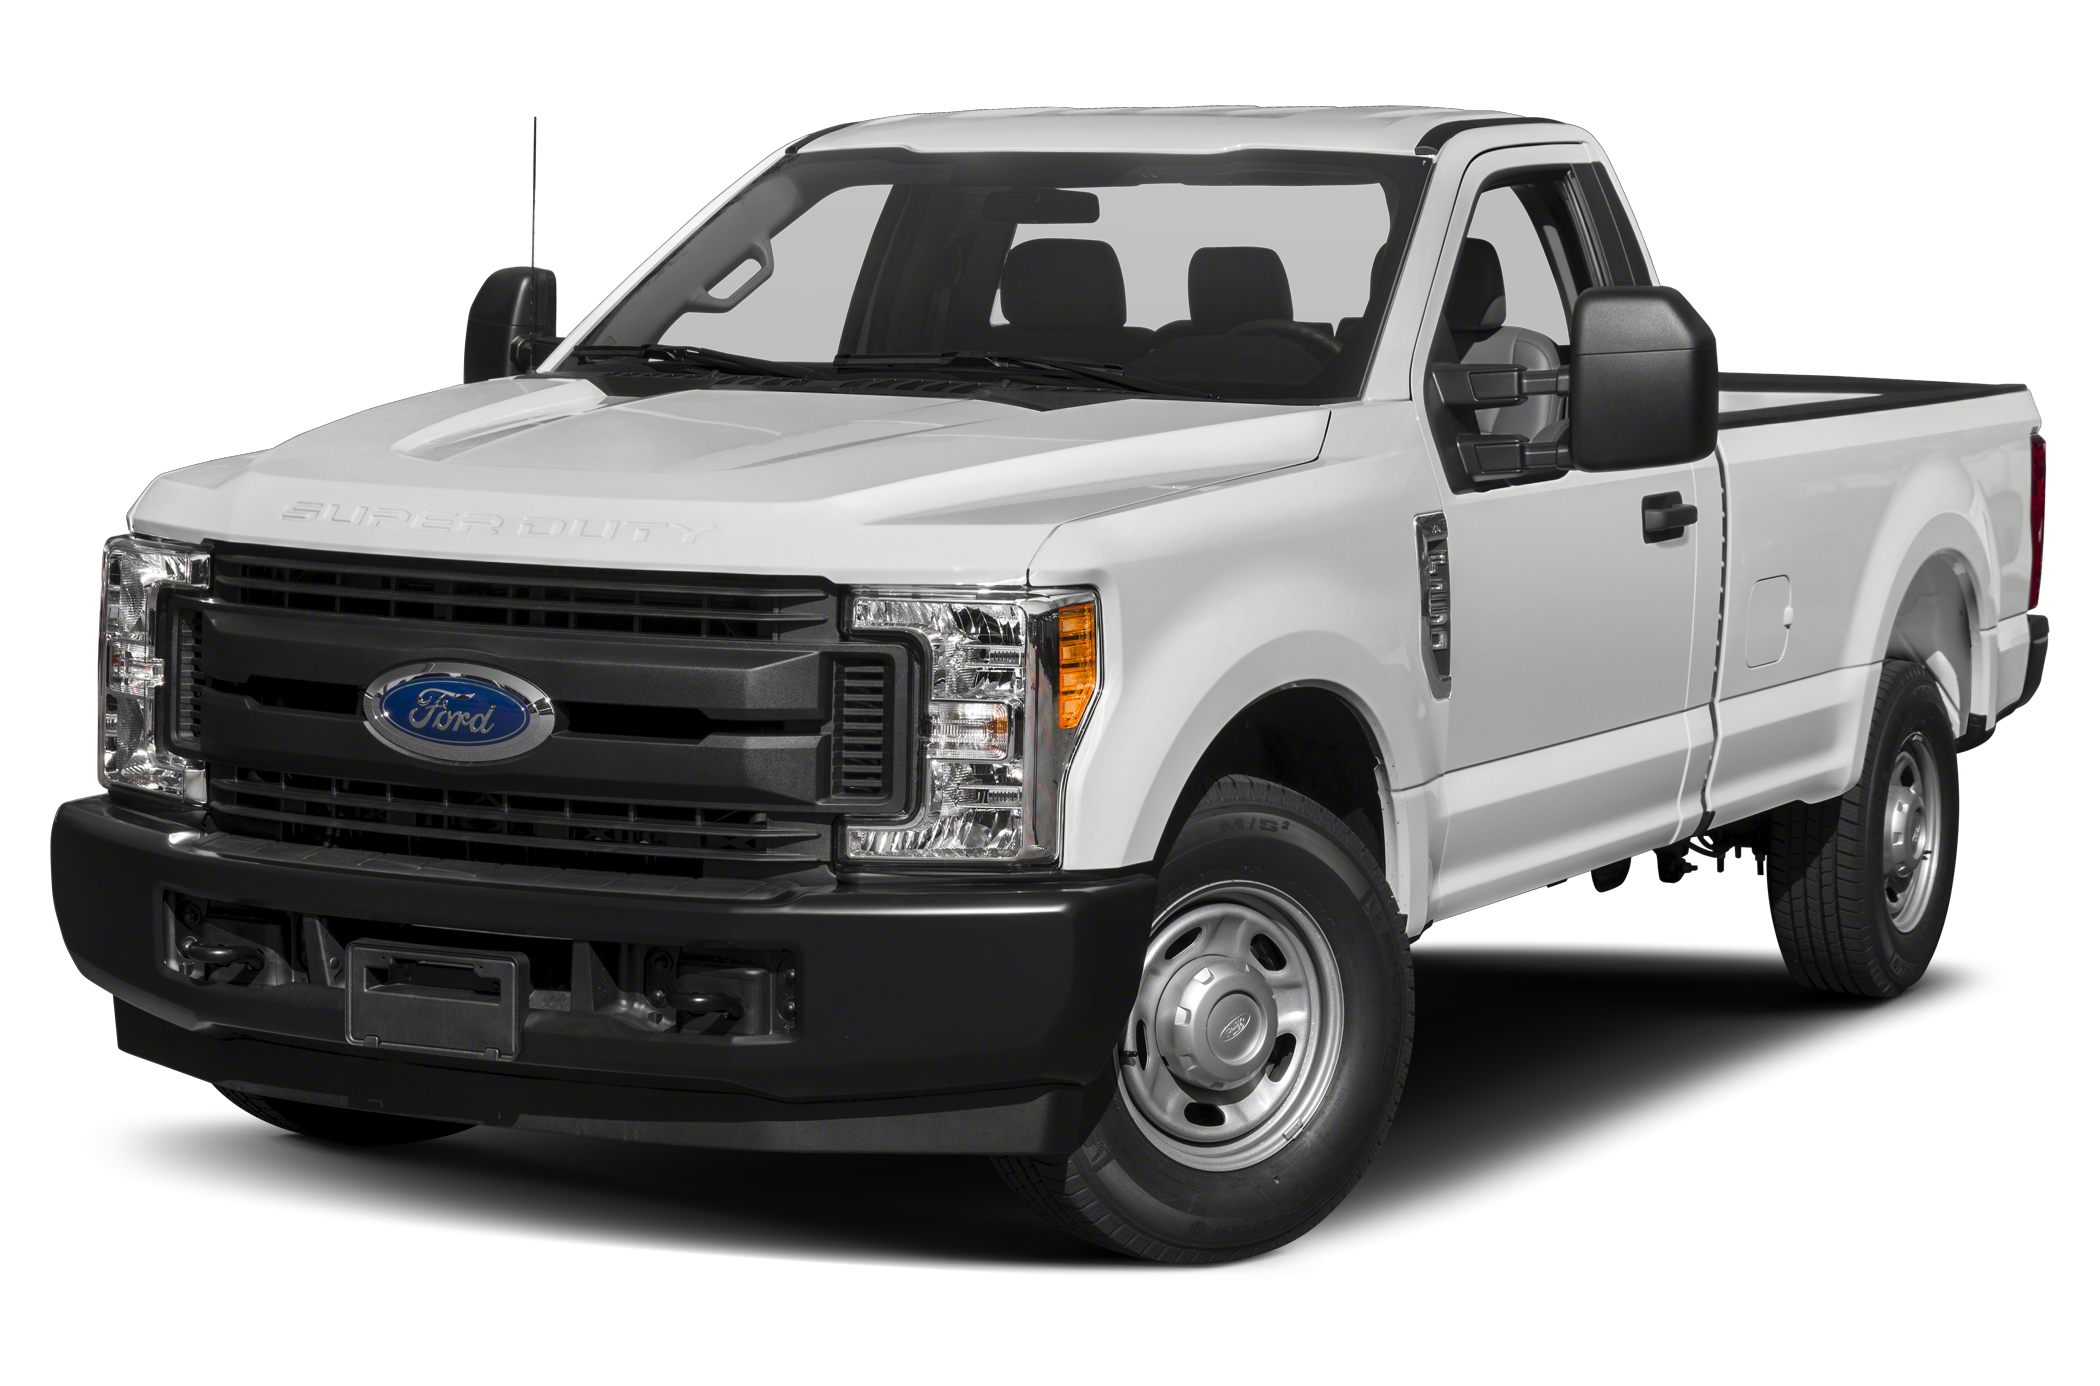 ford f 250 super duty sets diesel and biodiesel land speed records autoblog. Black Bedroom Furniture Sets. Home Design Ideas